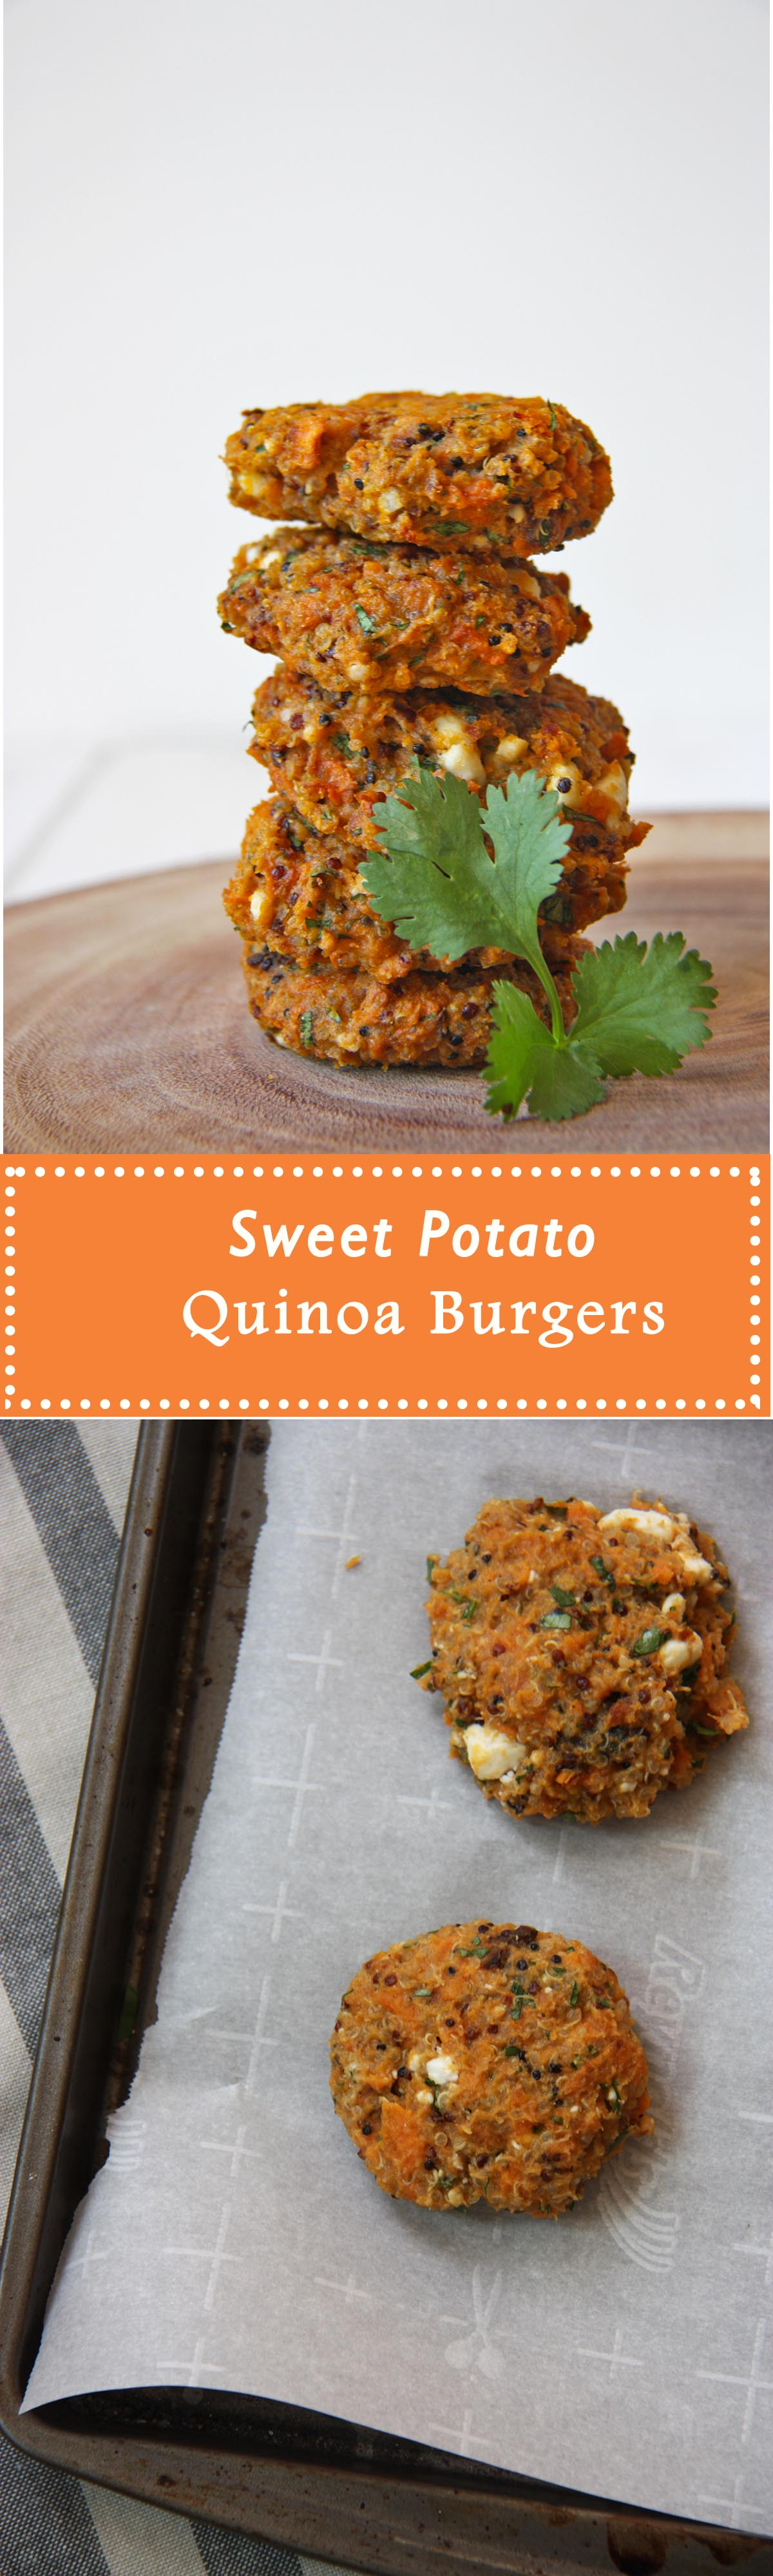 sweet potato quinoa burgers www.thehomecookskitchen.com vegetarian, easy to make and totally delicious! jazz up your burgers with these babies!